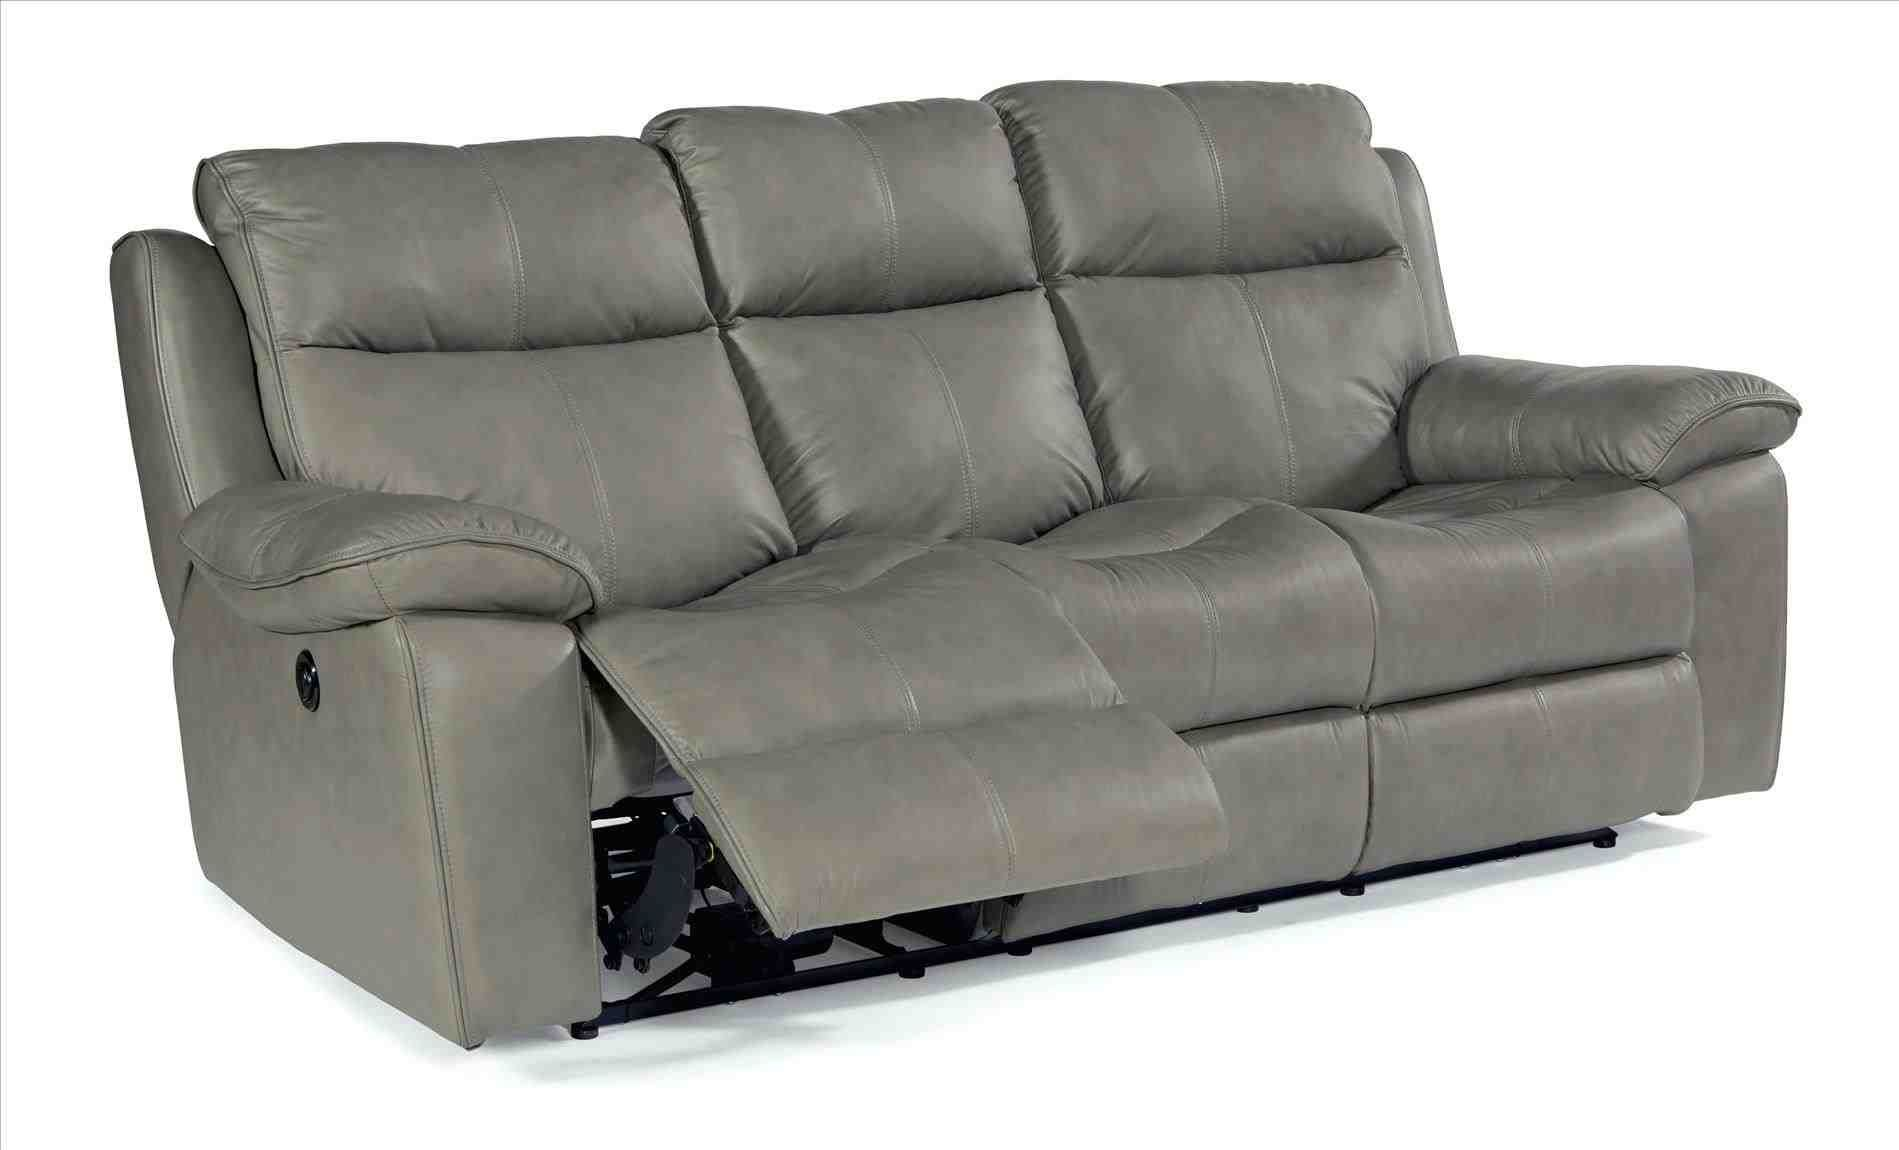 Sofa Set On Sale Buy Sofa Bed Singapore Cheap Sofas Sets Used Sofa Set For Sale